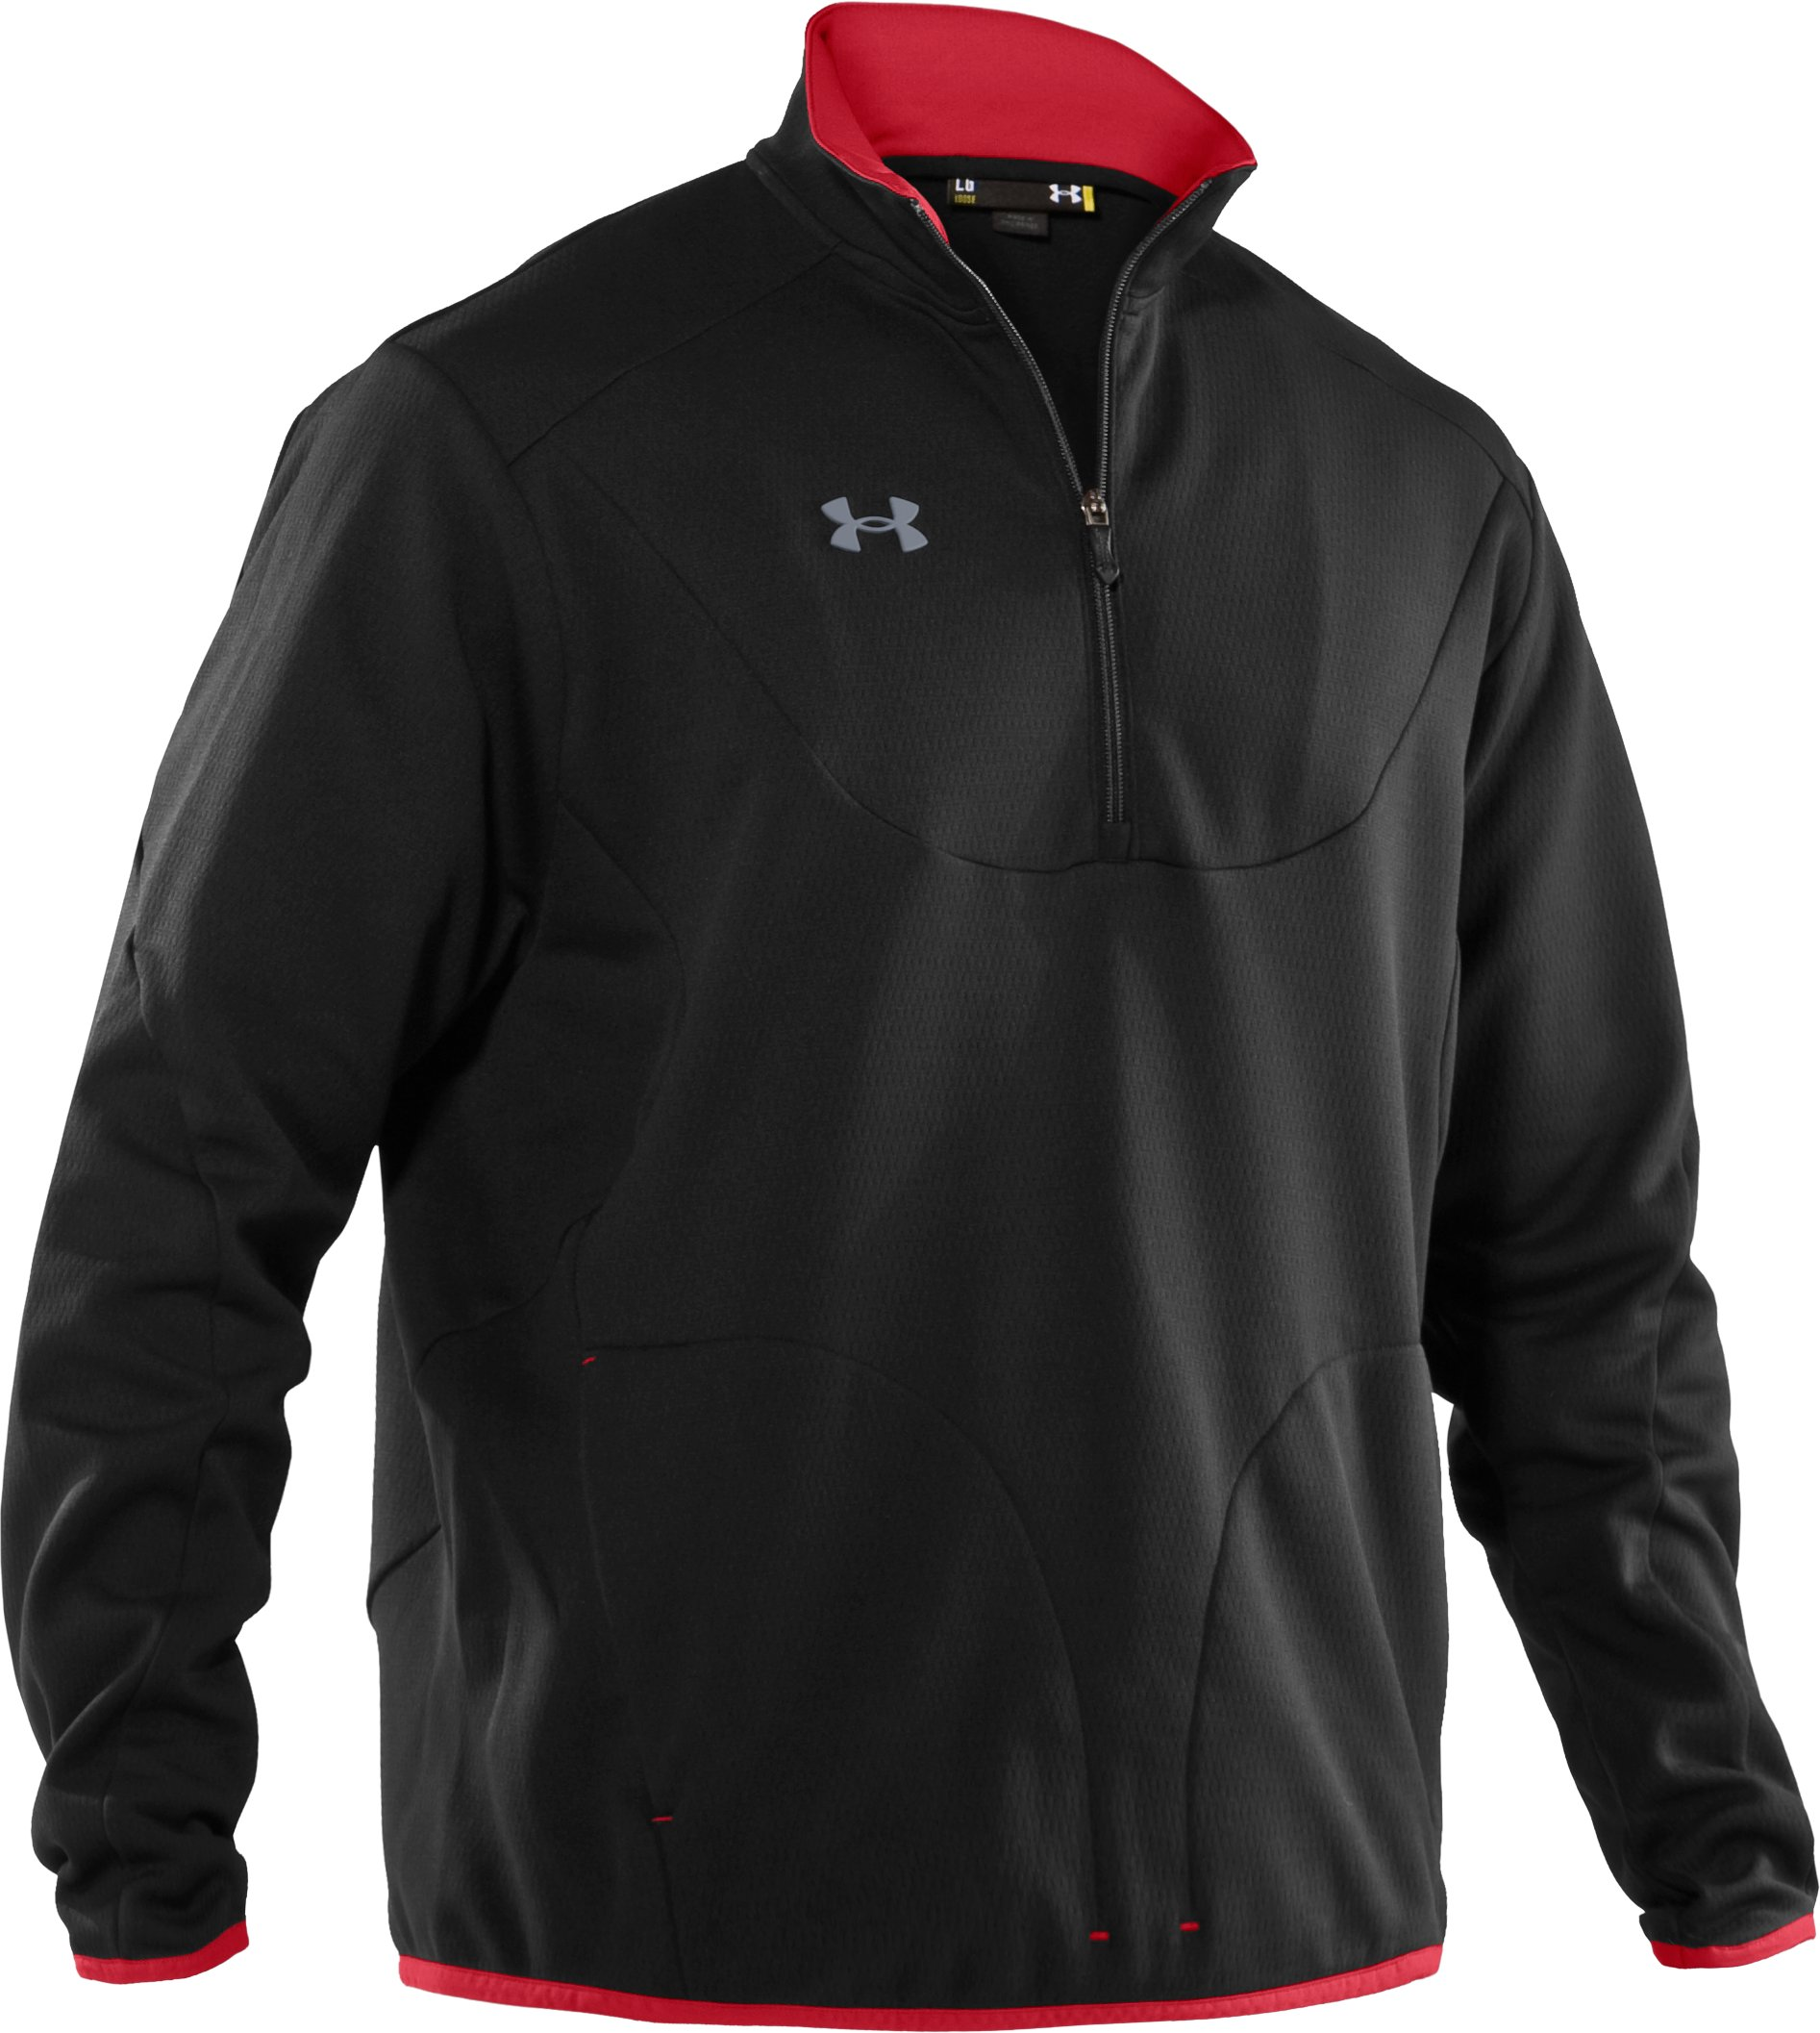 Men's Hockey ¼ Zip Microfleece, Black